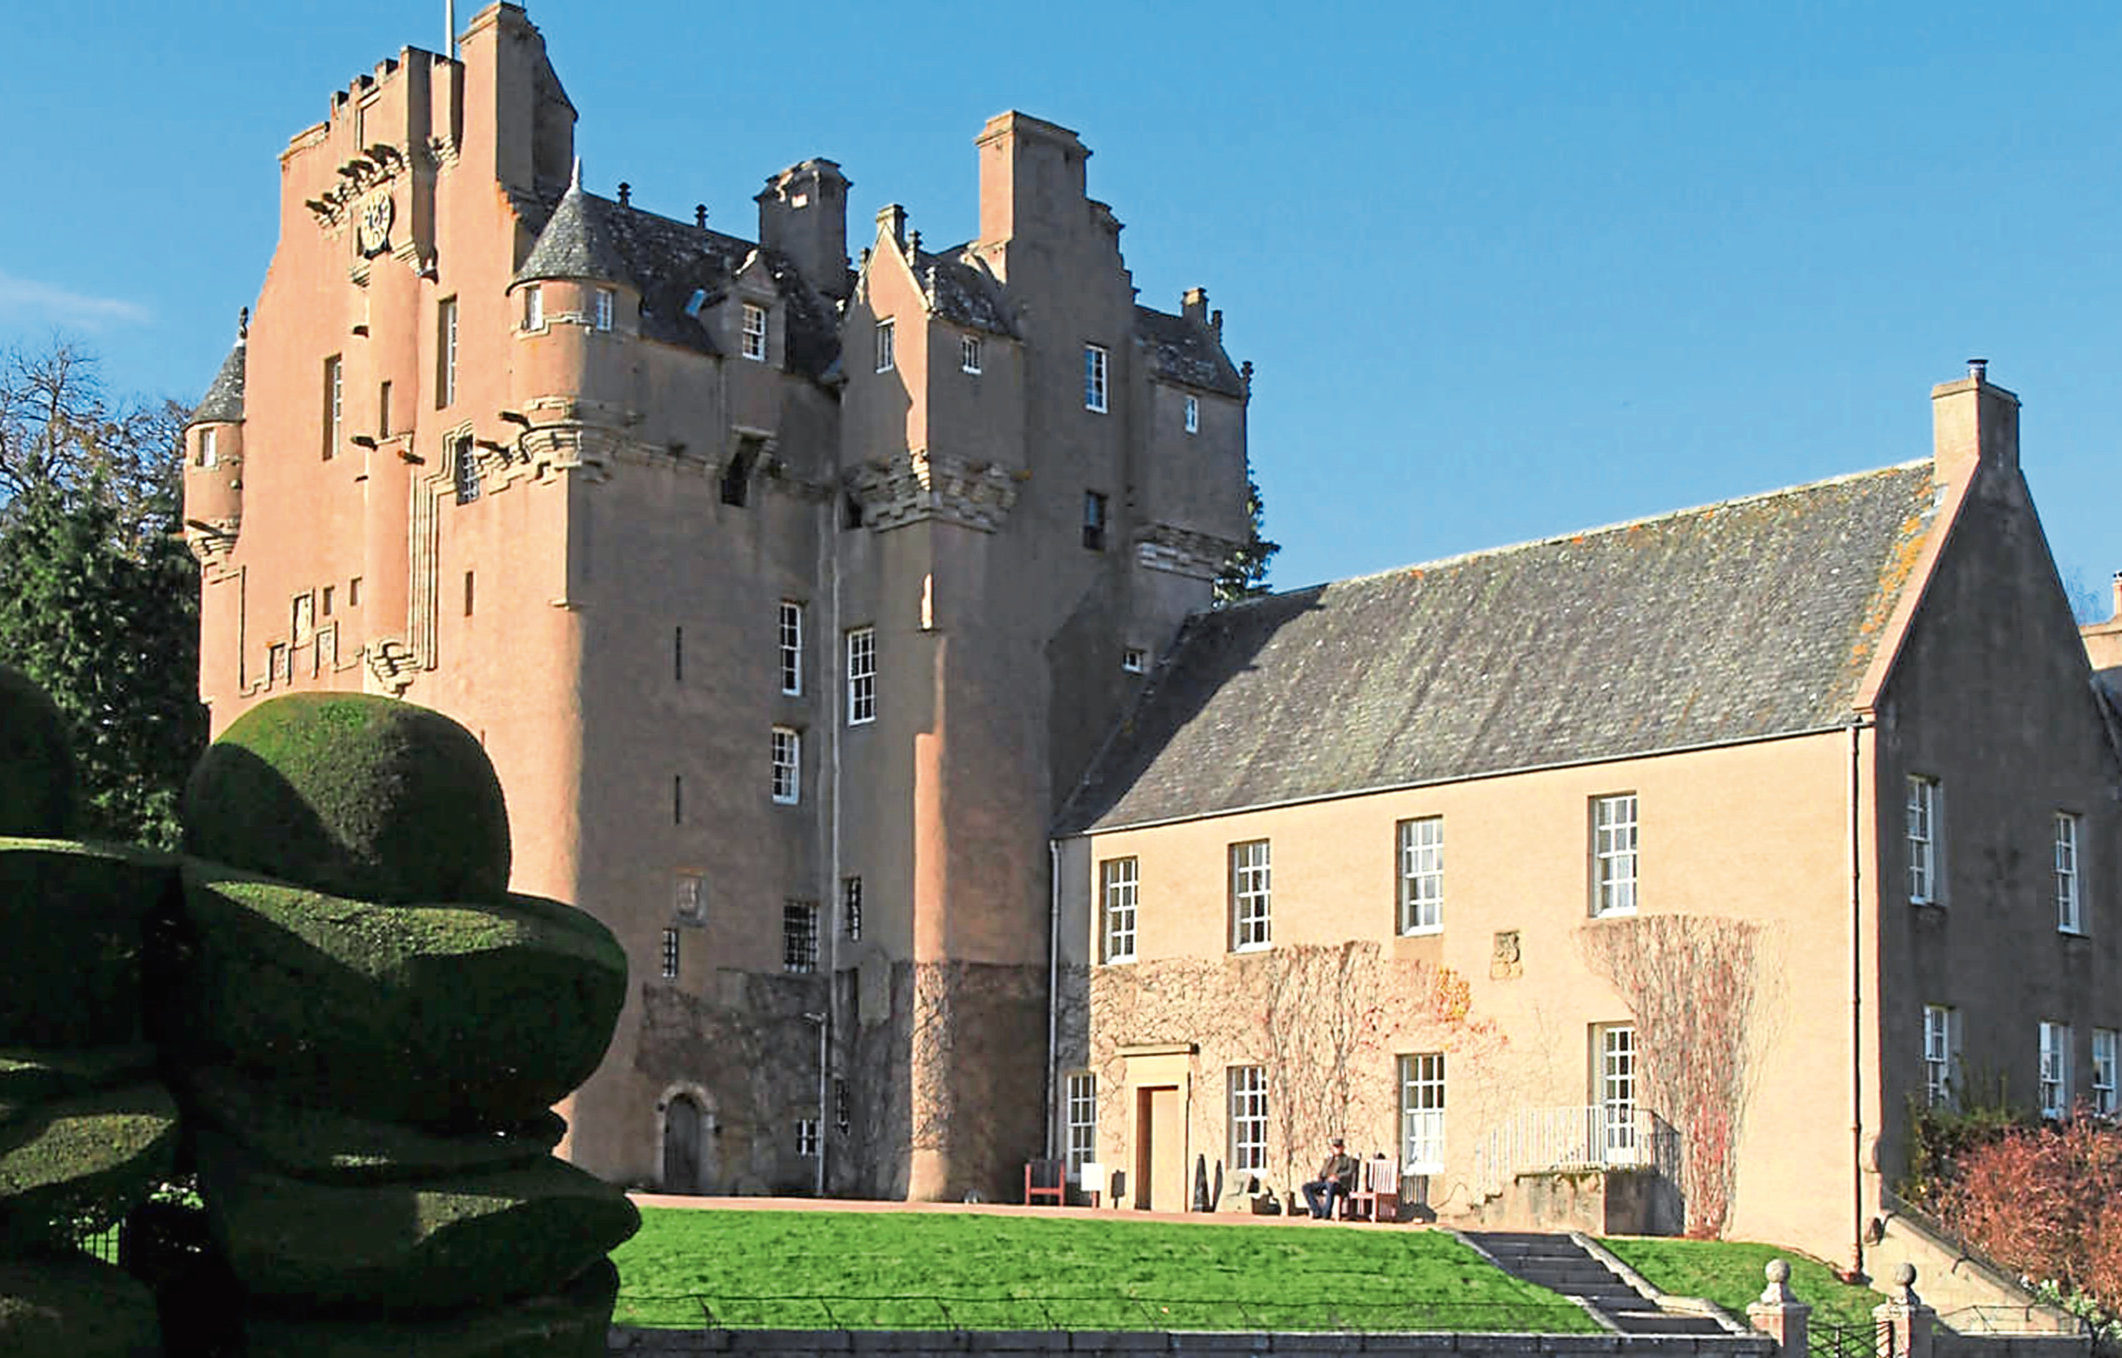 The Antiques Roadshow will be at Crathes Castle on Sunday